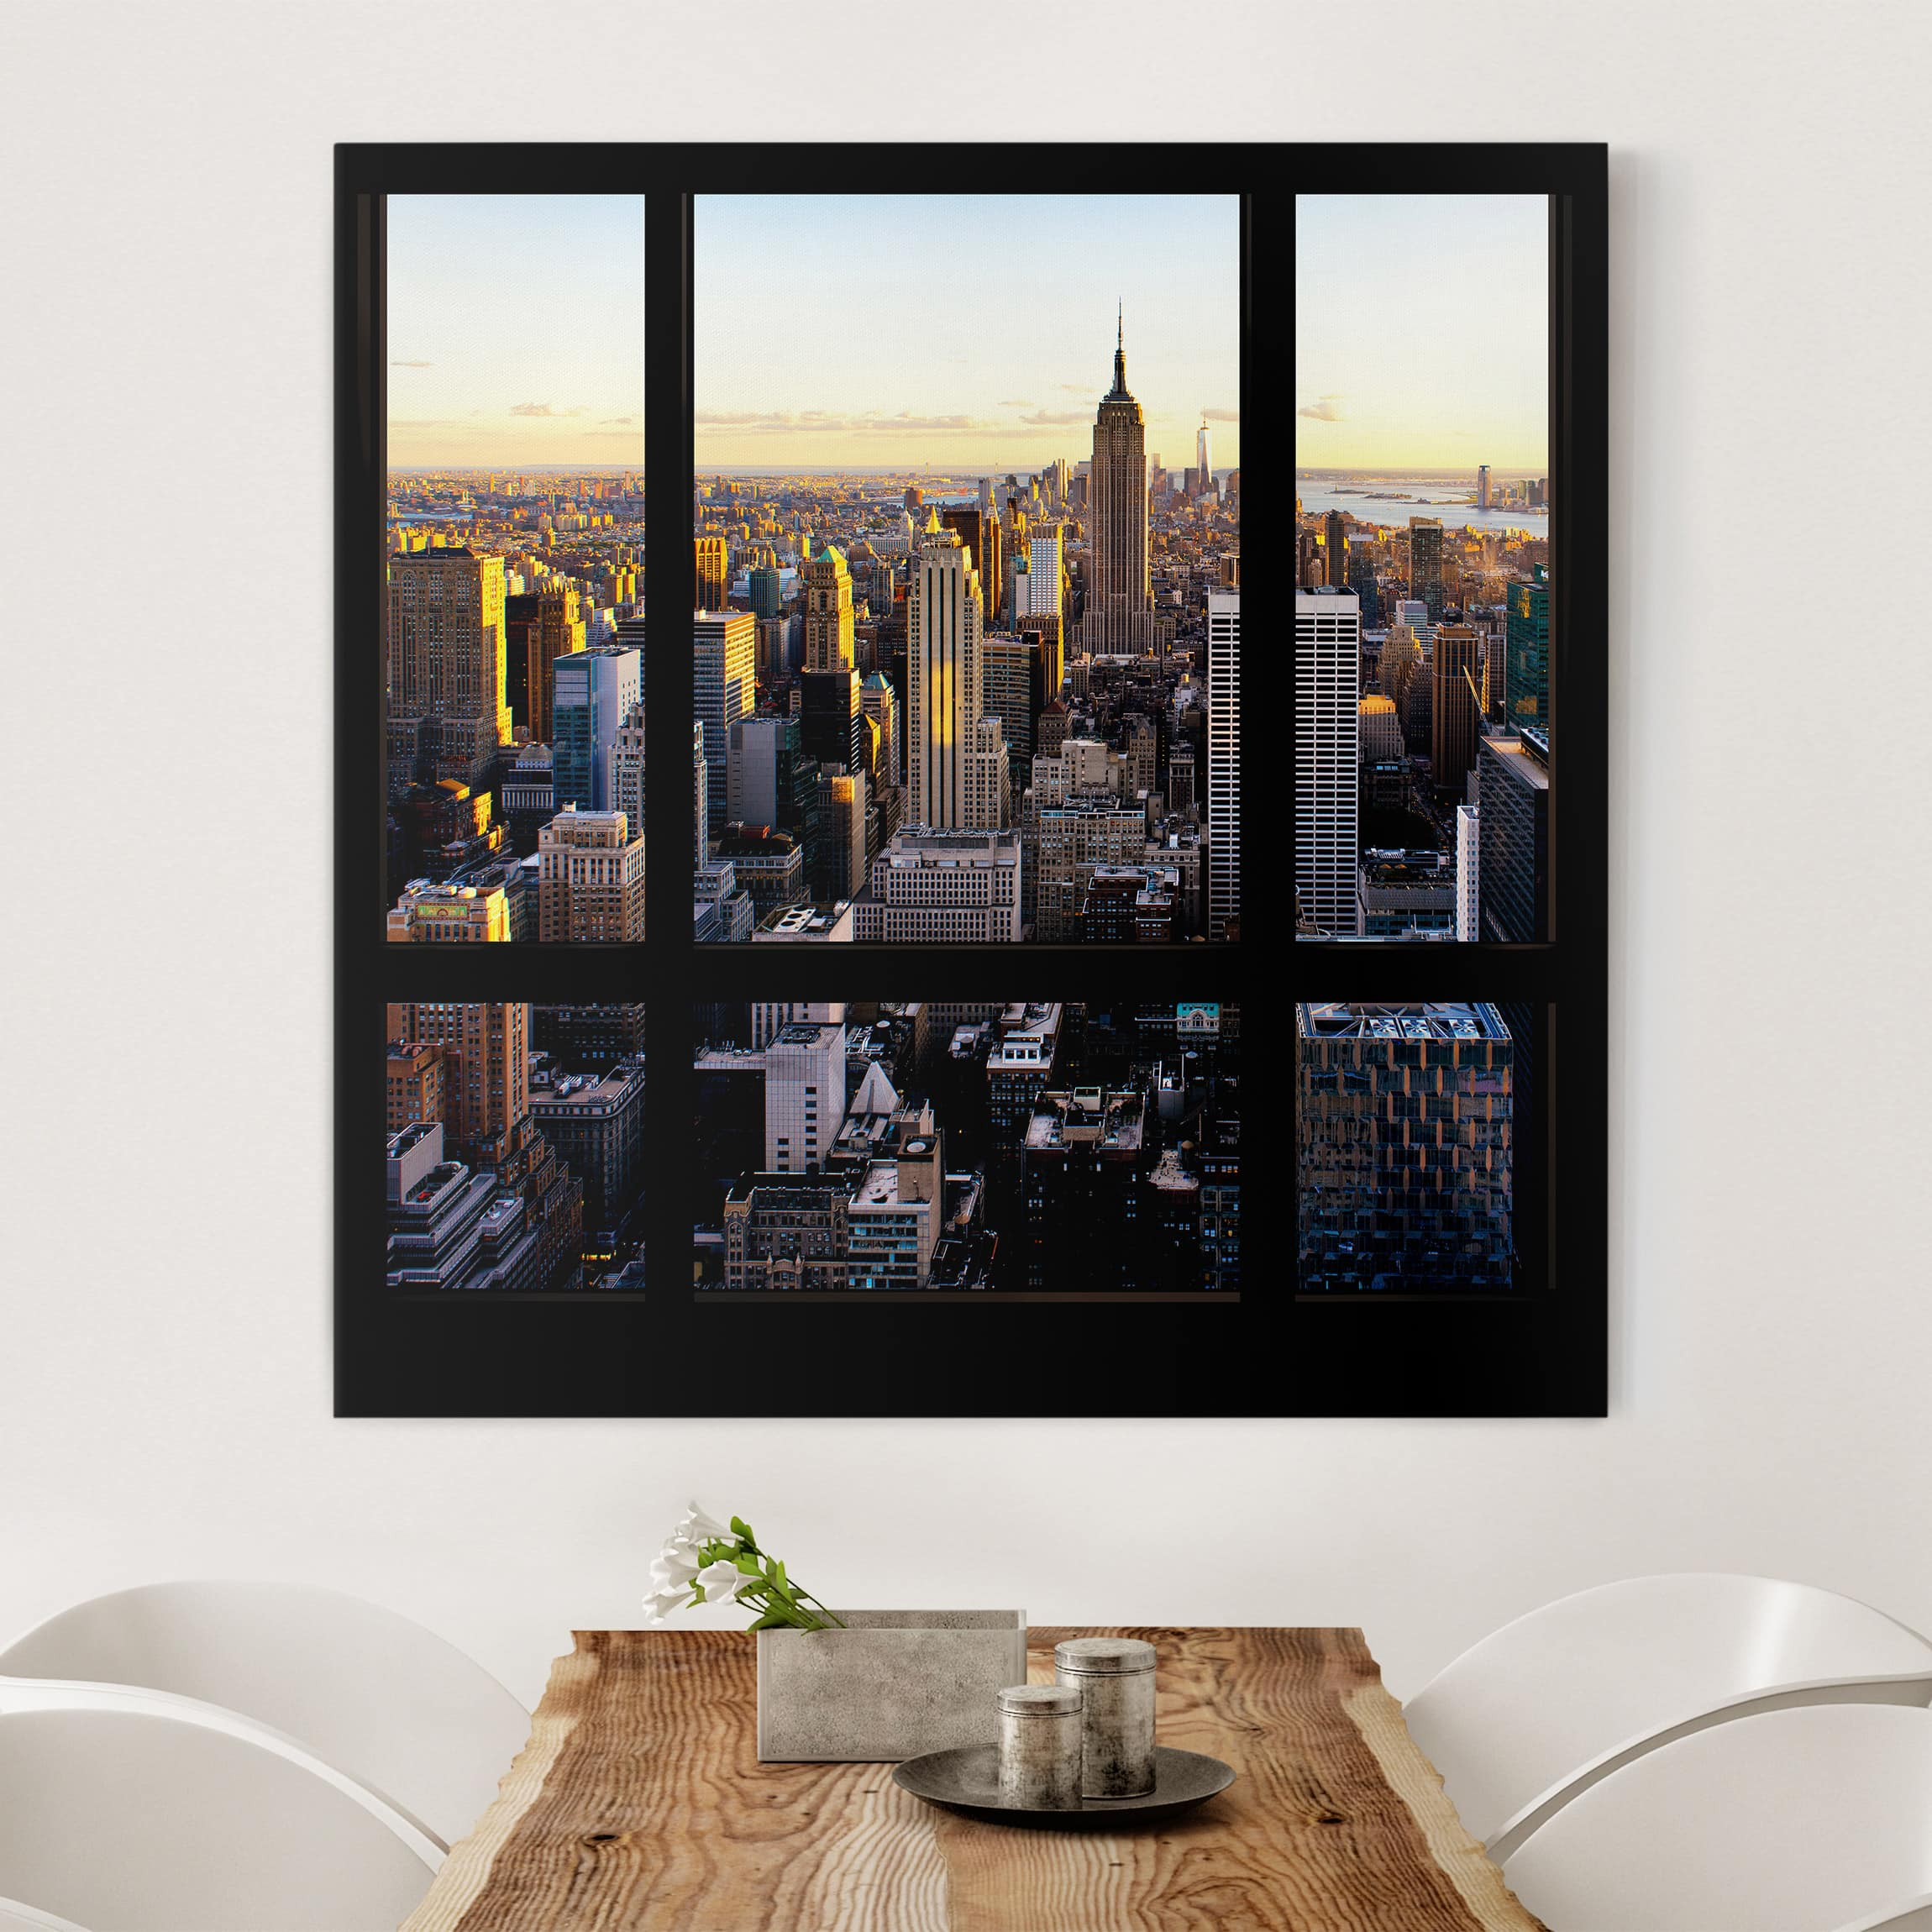 leinwandbild fensterblick am abend ber new york. Black Bedroom Furniture Sets. Home Design Ideas